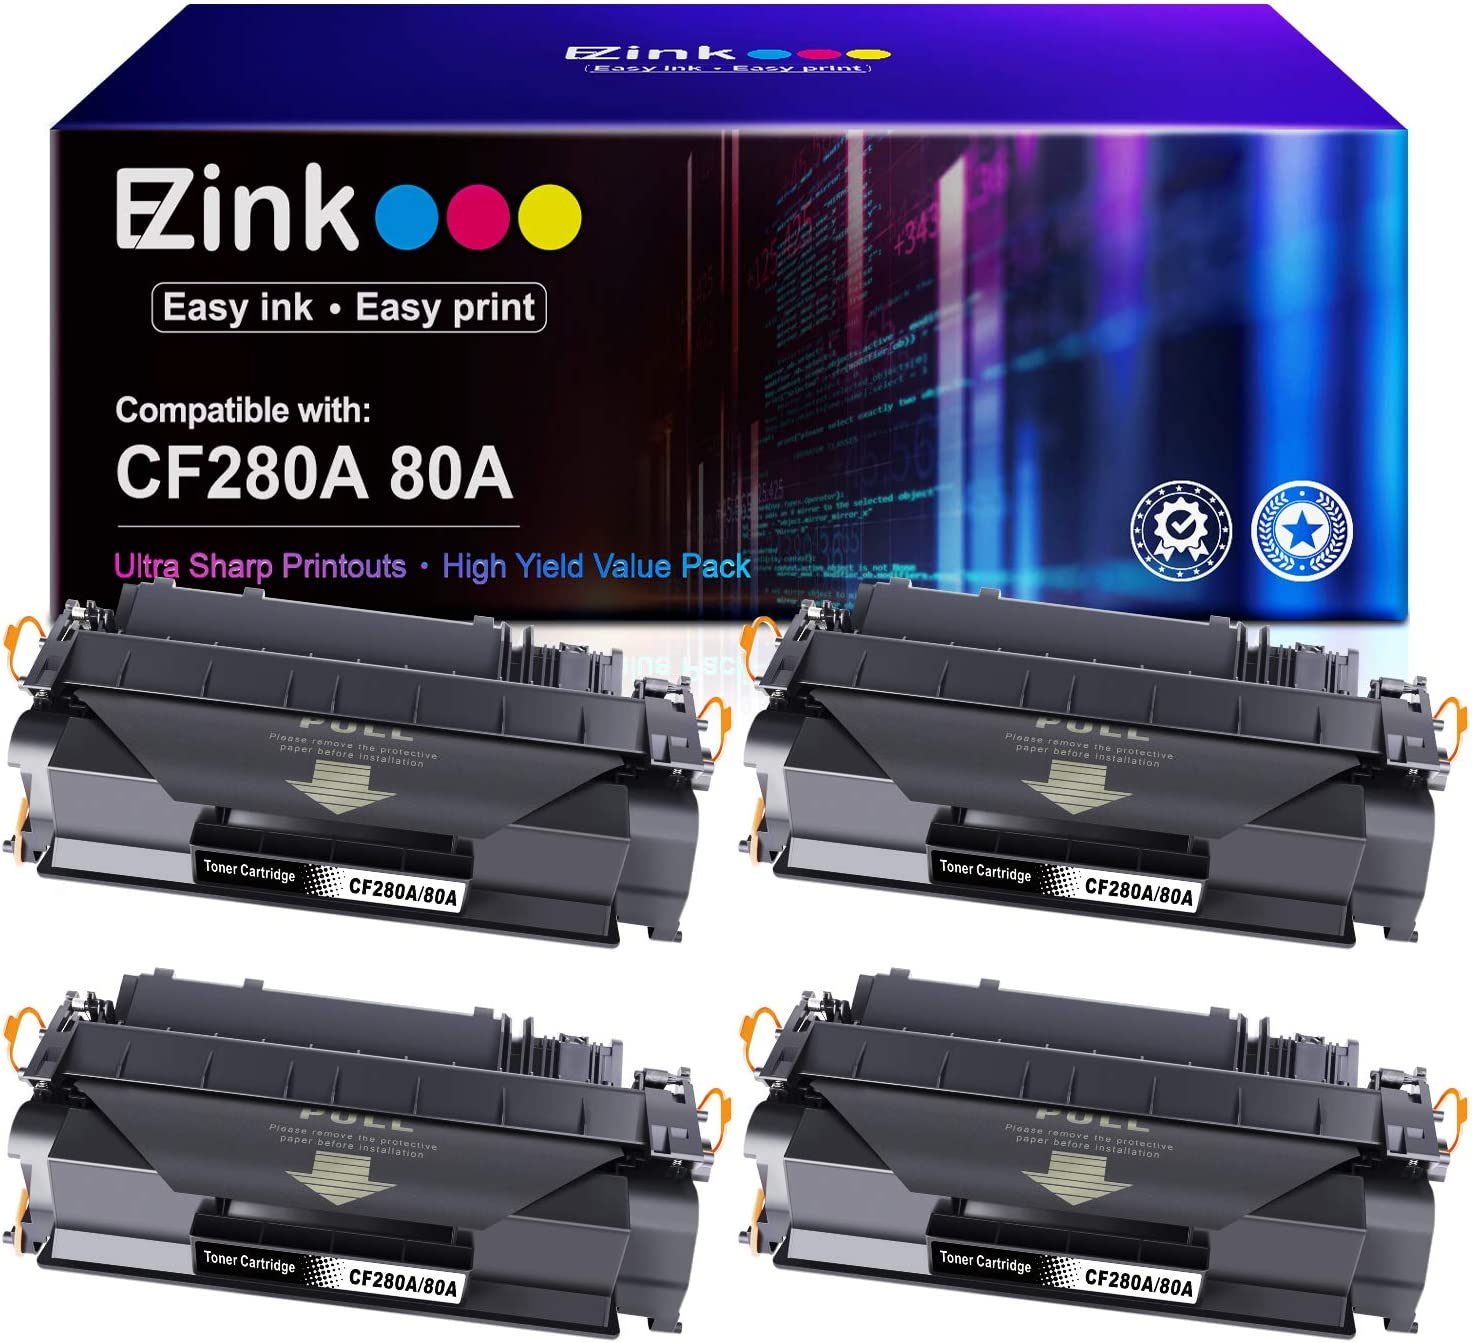 E-Z Ink (TM) Compatible Toner Cartridge Replacement for HP 80A CF280A 80X CF280X 05A CE505A to use with HP Laserjet M401n M401dne M425dn M401dw M401dn P2035 P2055dn (Black, 4-Pack)